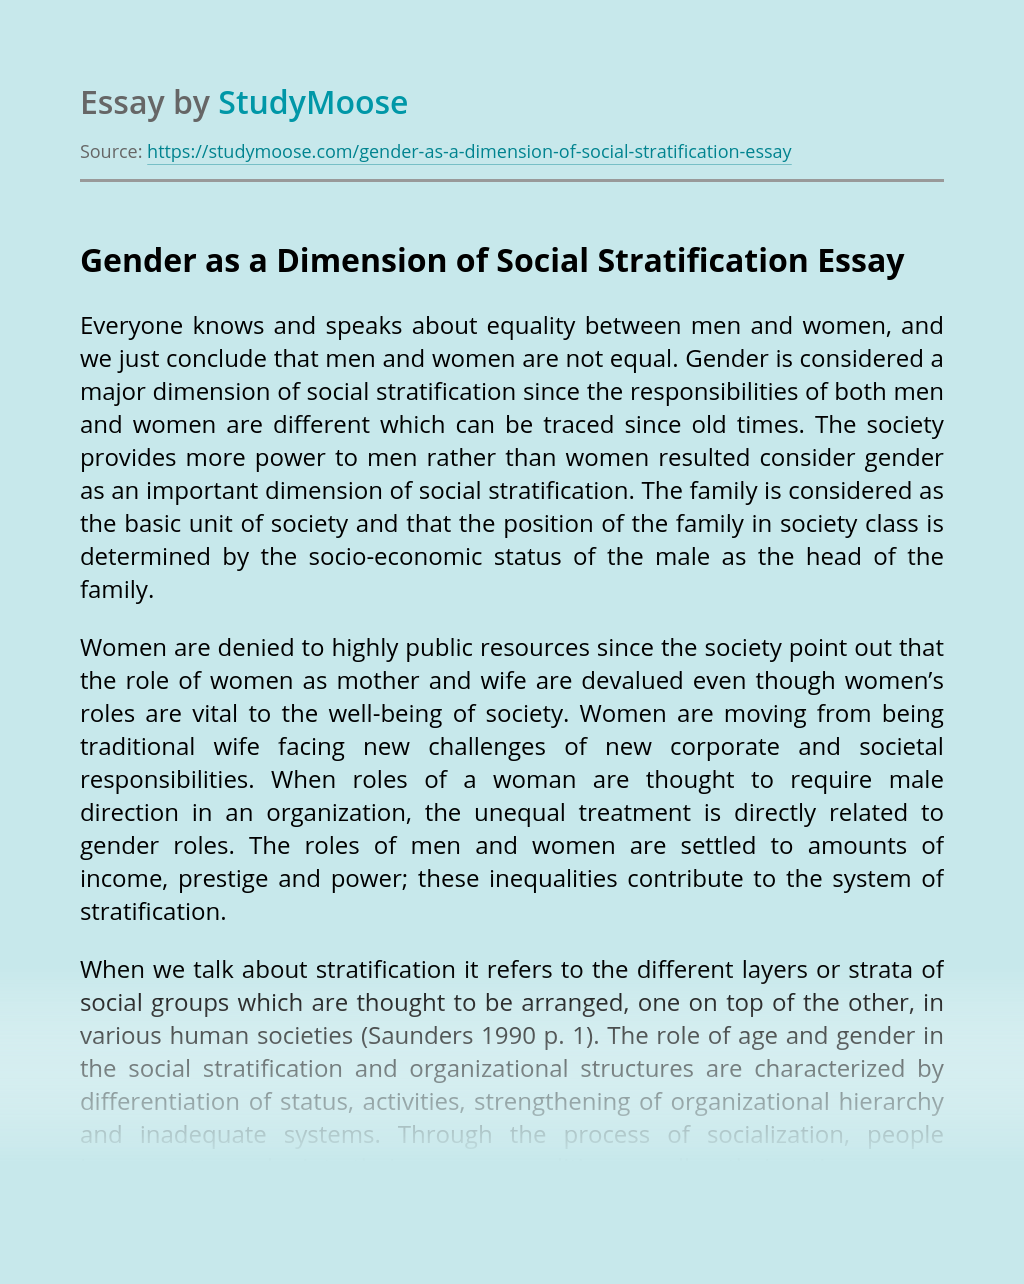 Gender as a Dimension of Social Stratification